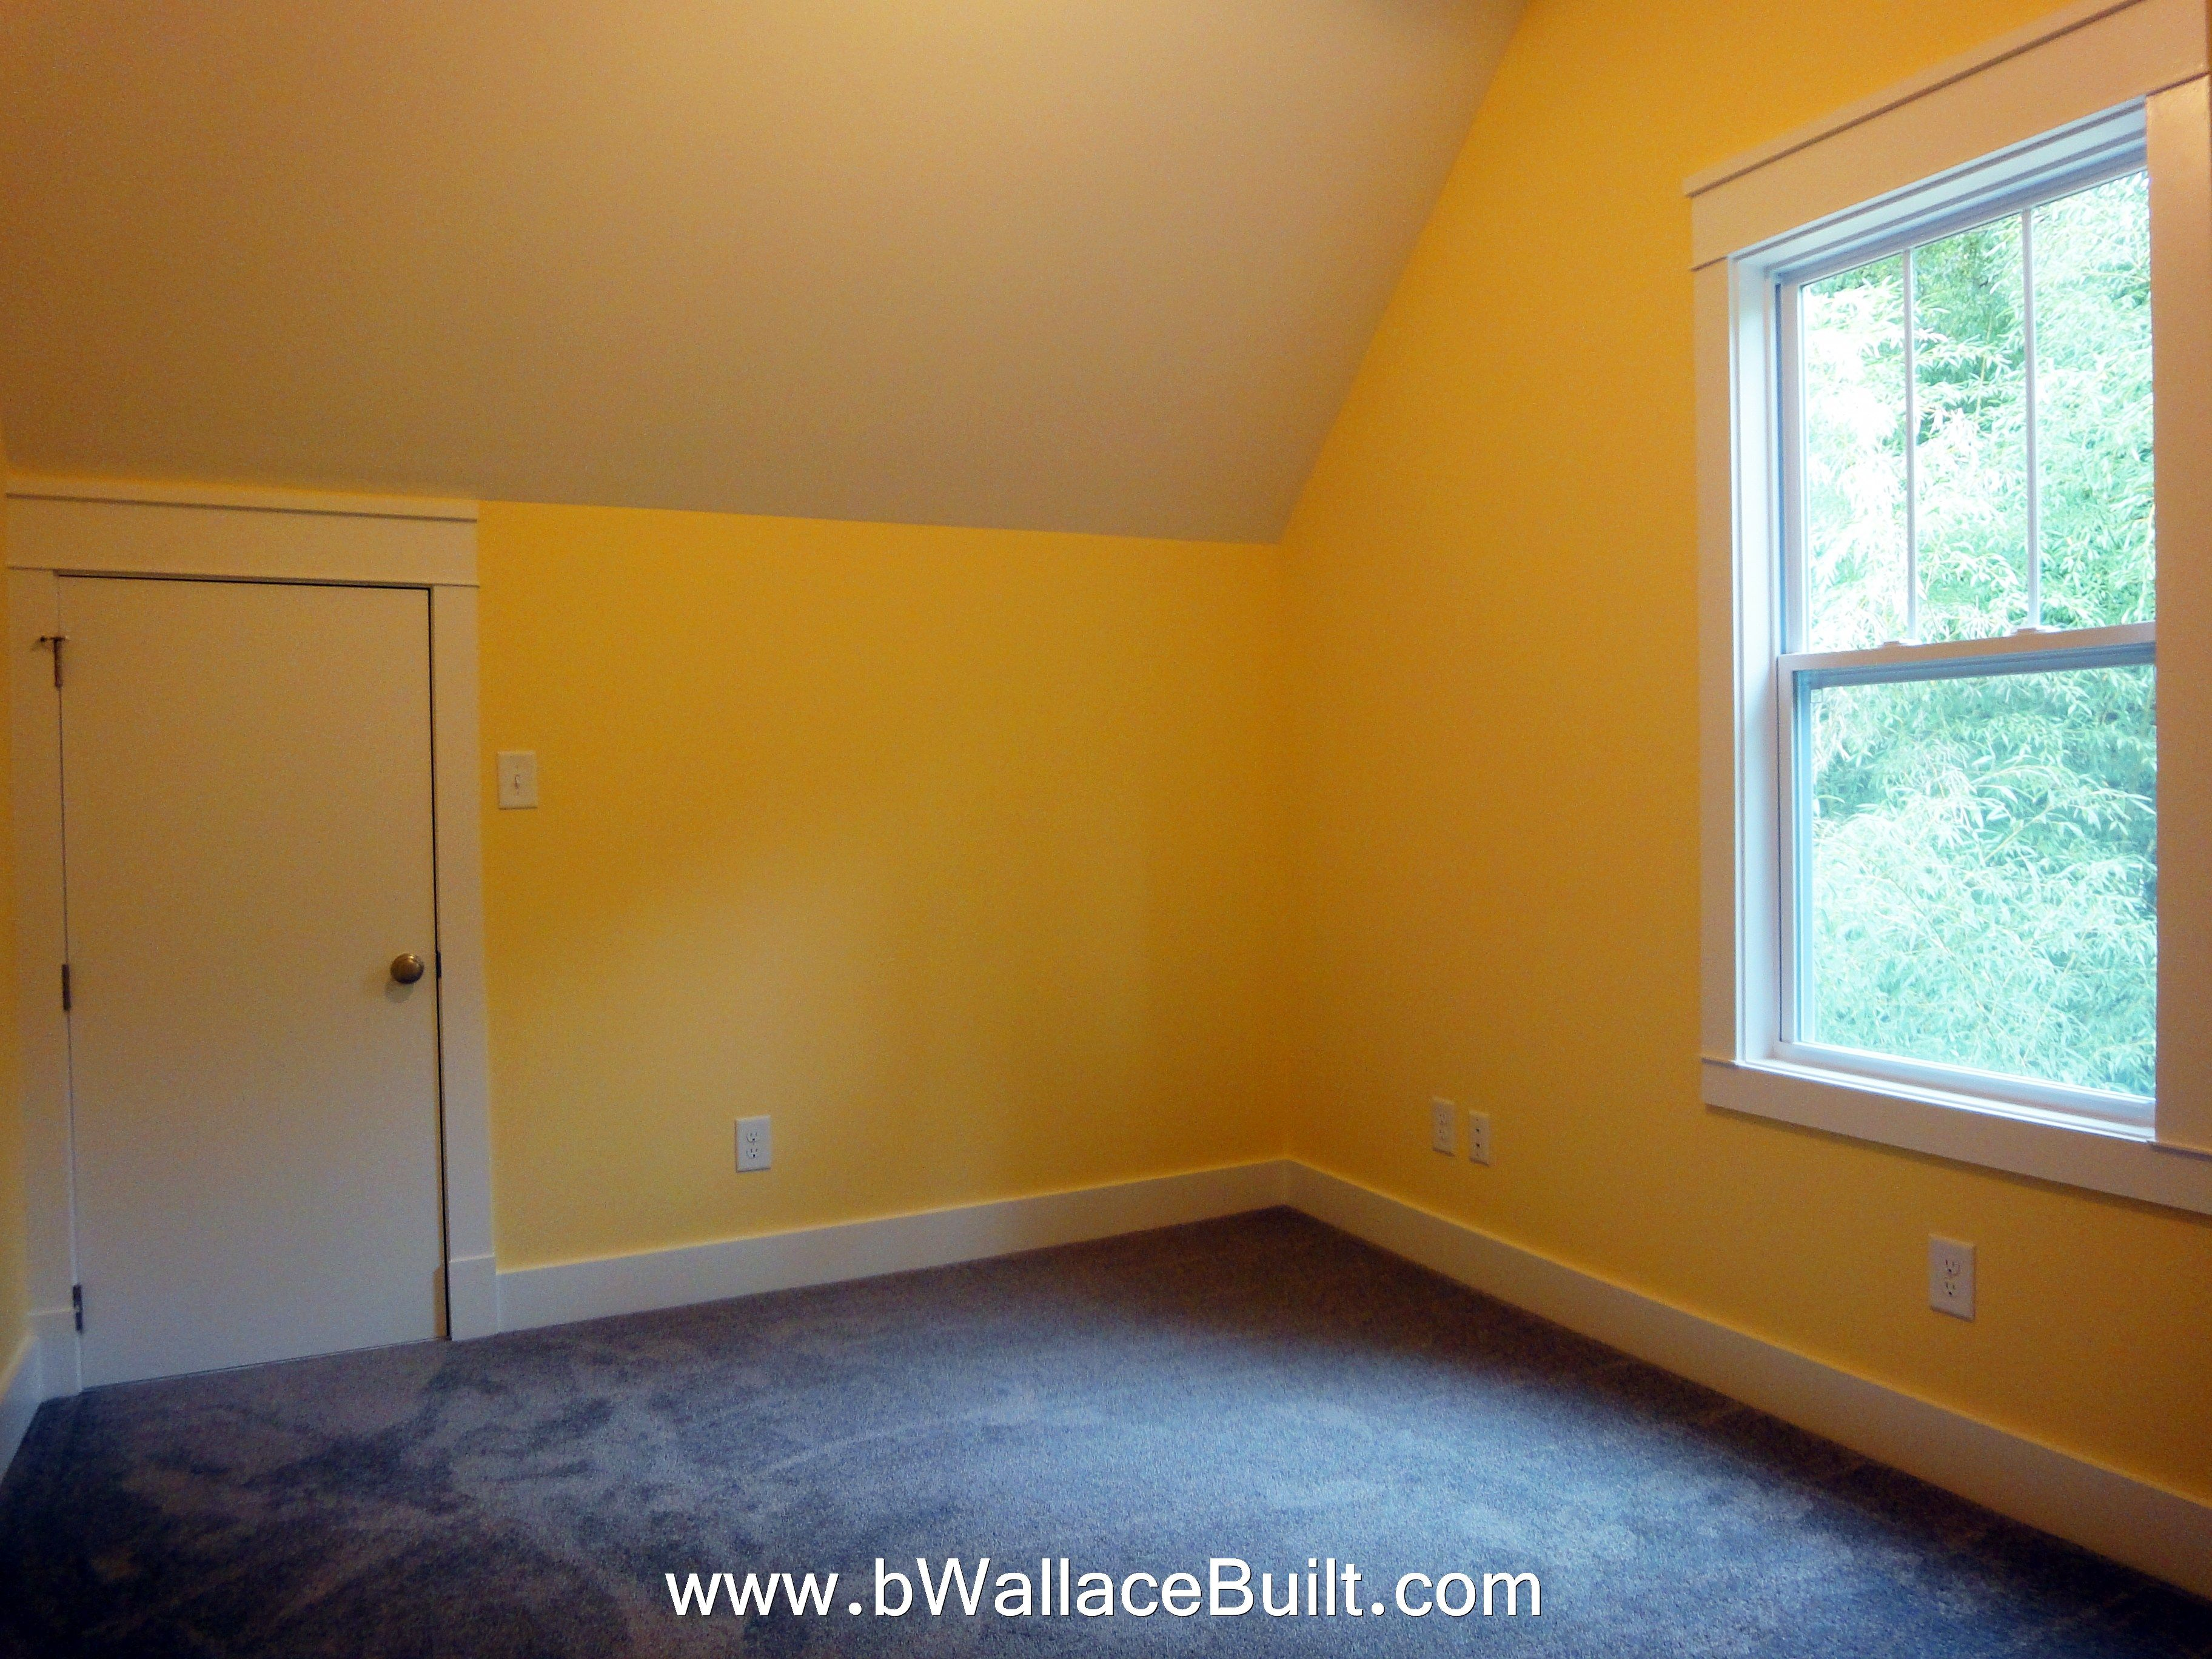 Attic Space Access Doors : Bonus room with access door to attic space the omstead